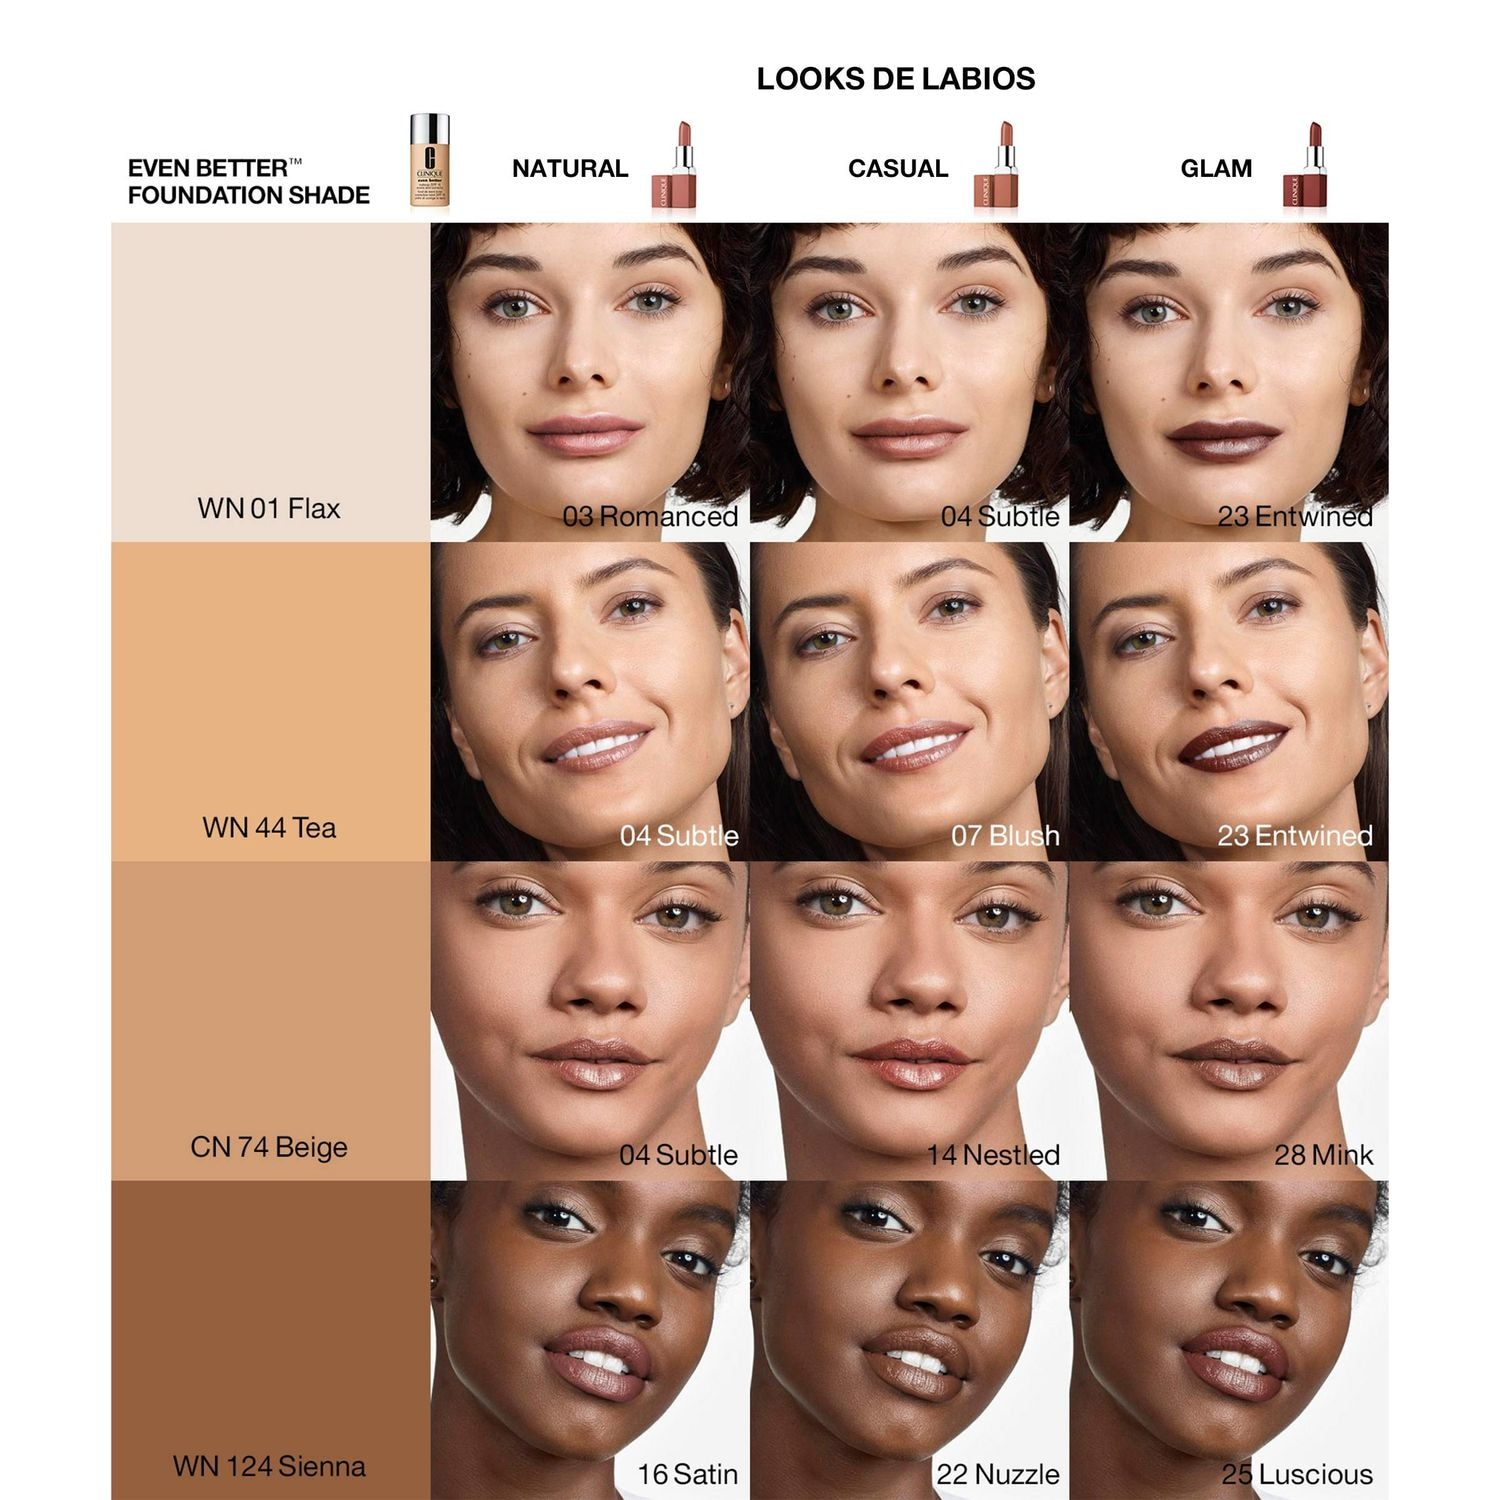 EVEN BETTER POP™ LIP COLOUR FOUNDATION